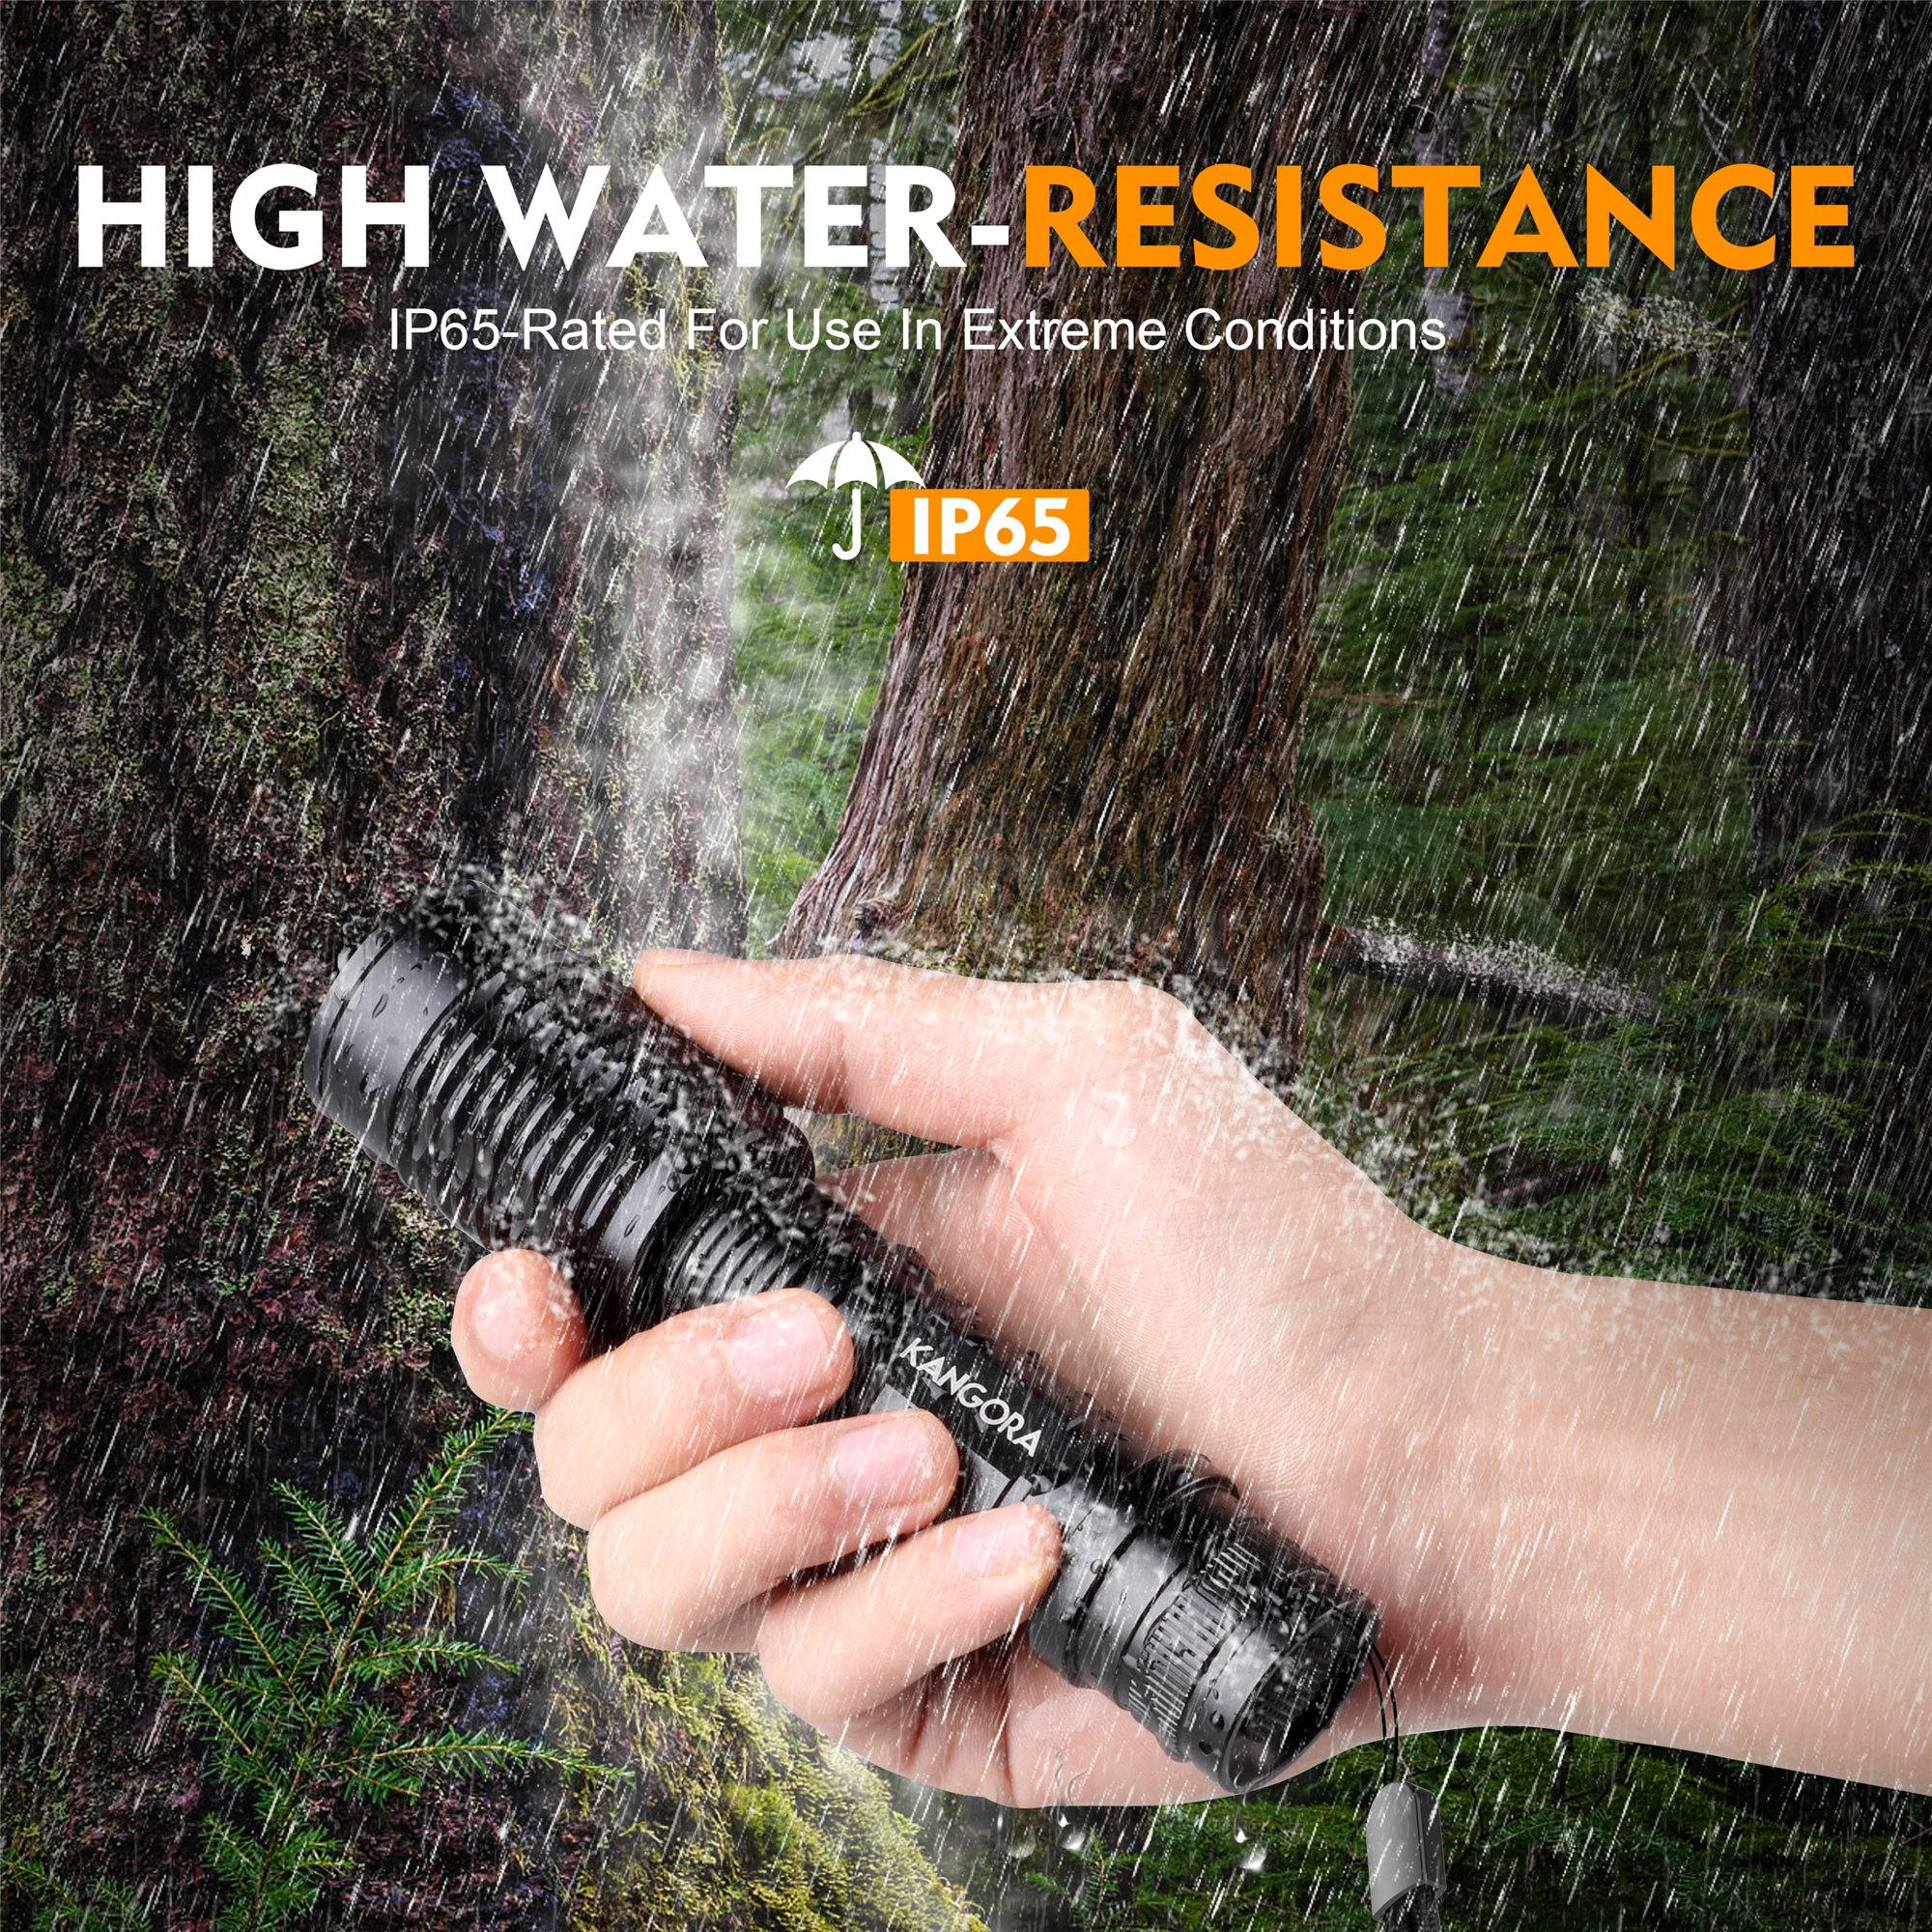 KANGORA LED Flashlight Kit - 5 Modes - Water-Resistant Handheld Flashlights with Rechargeable 18650 Battery Charger for Camping, Hiking, Cycling, and Emergency Search Missions by KANGORA (Image #6)